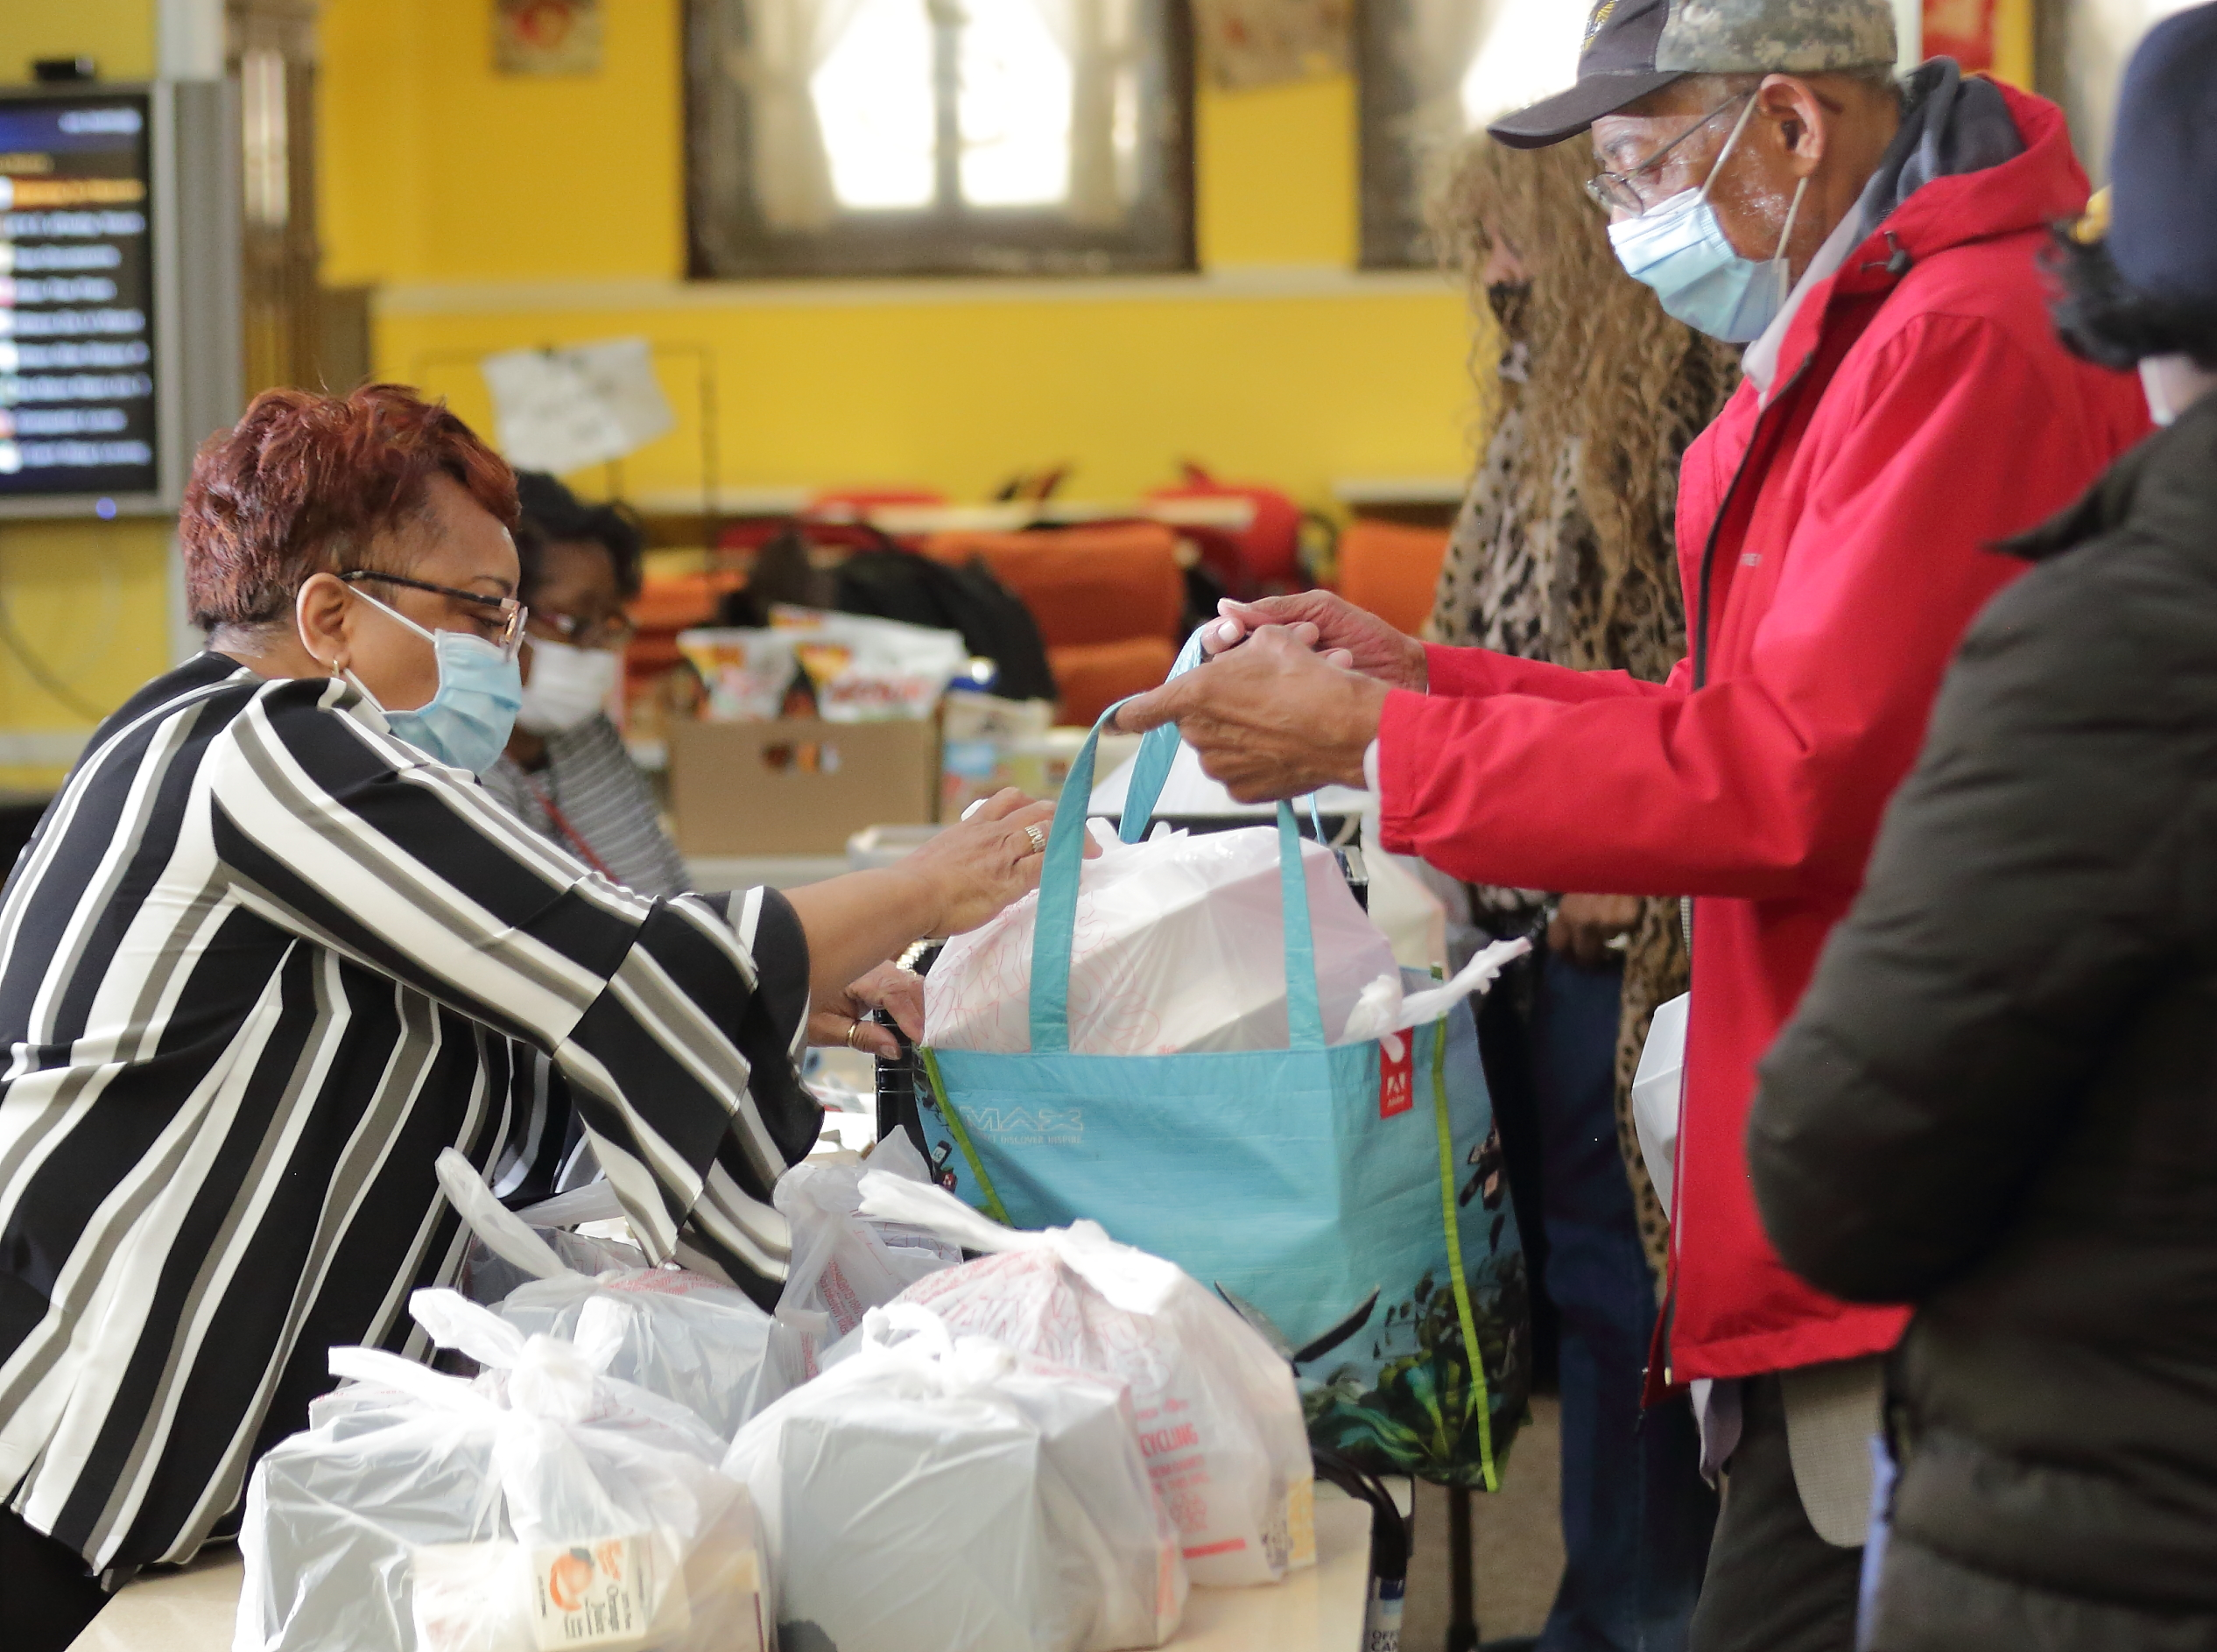 A woman is helping a man placing food carryouts in his reusable bag